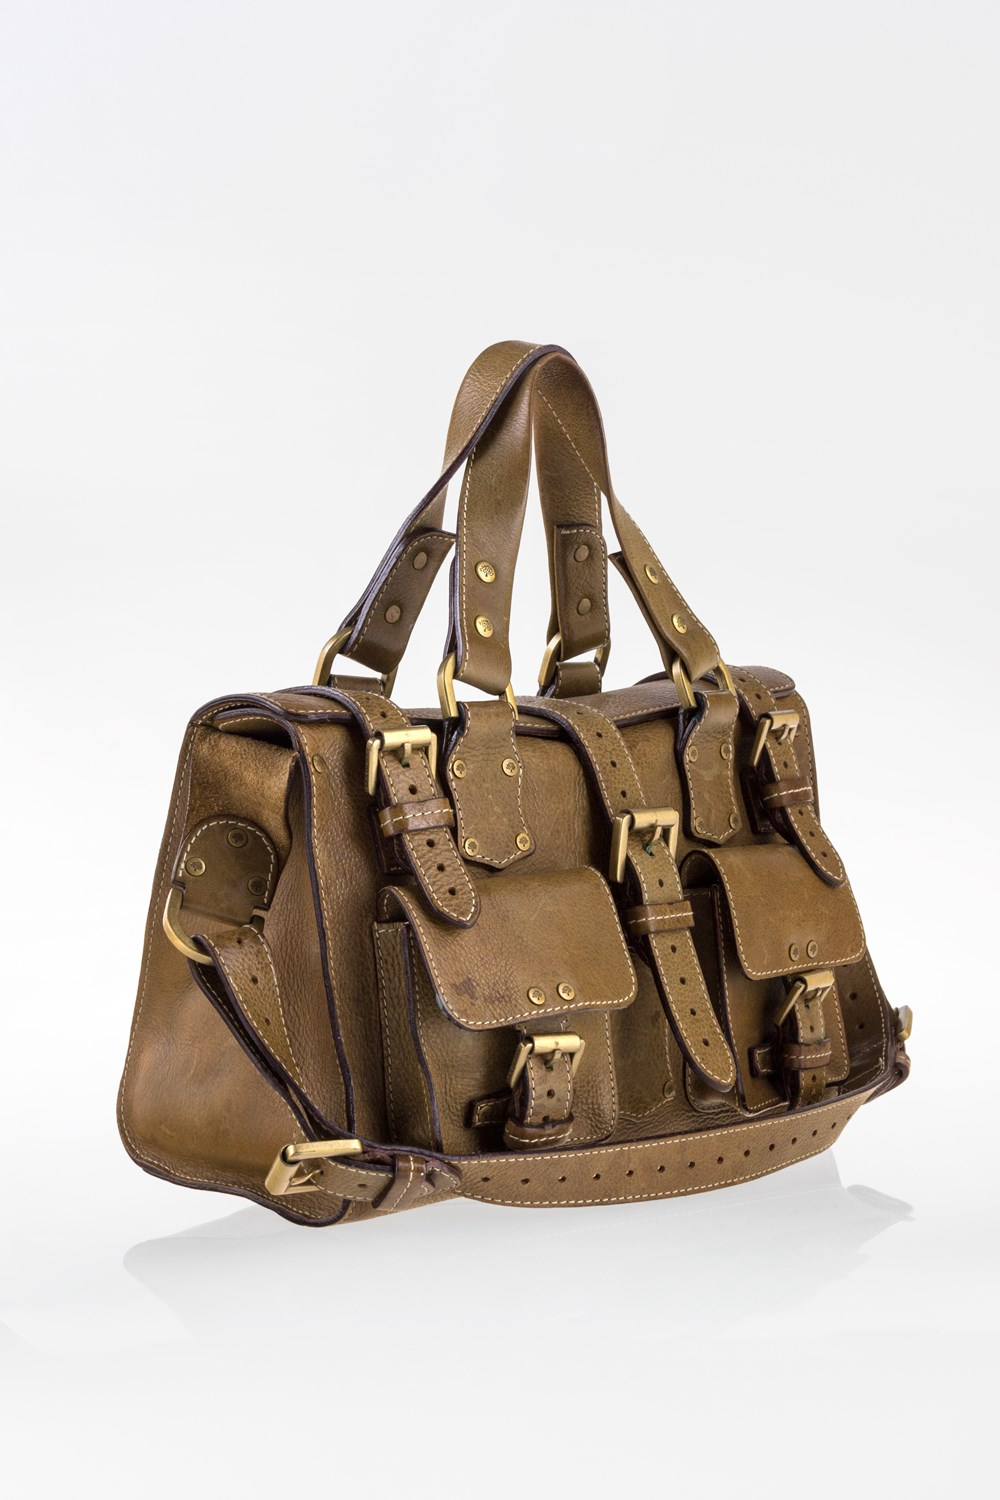 a4af23b2eac Khaki Mini Roxanne Leather Tote Bag, Totes, Buy Handbags, Bags, Starbags  Products, Starbags.gr